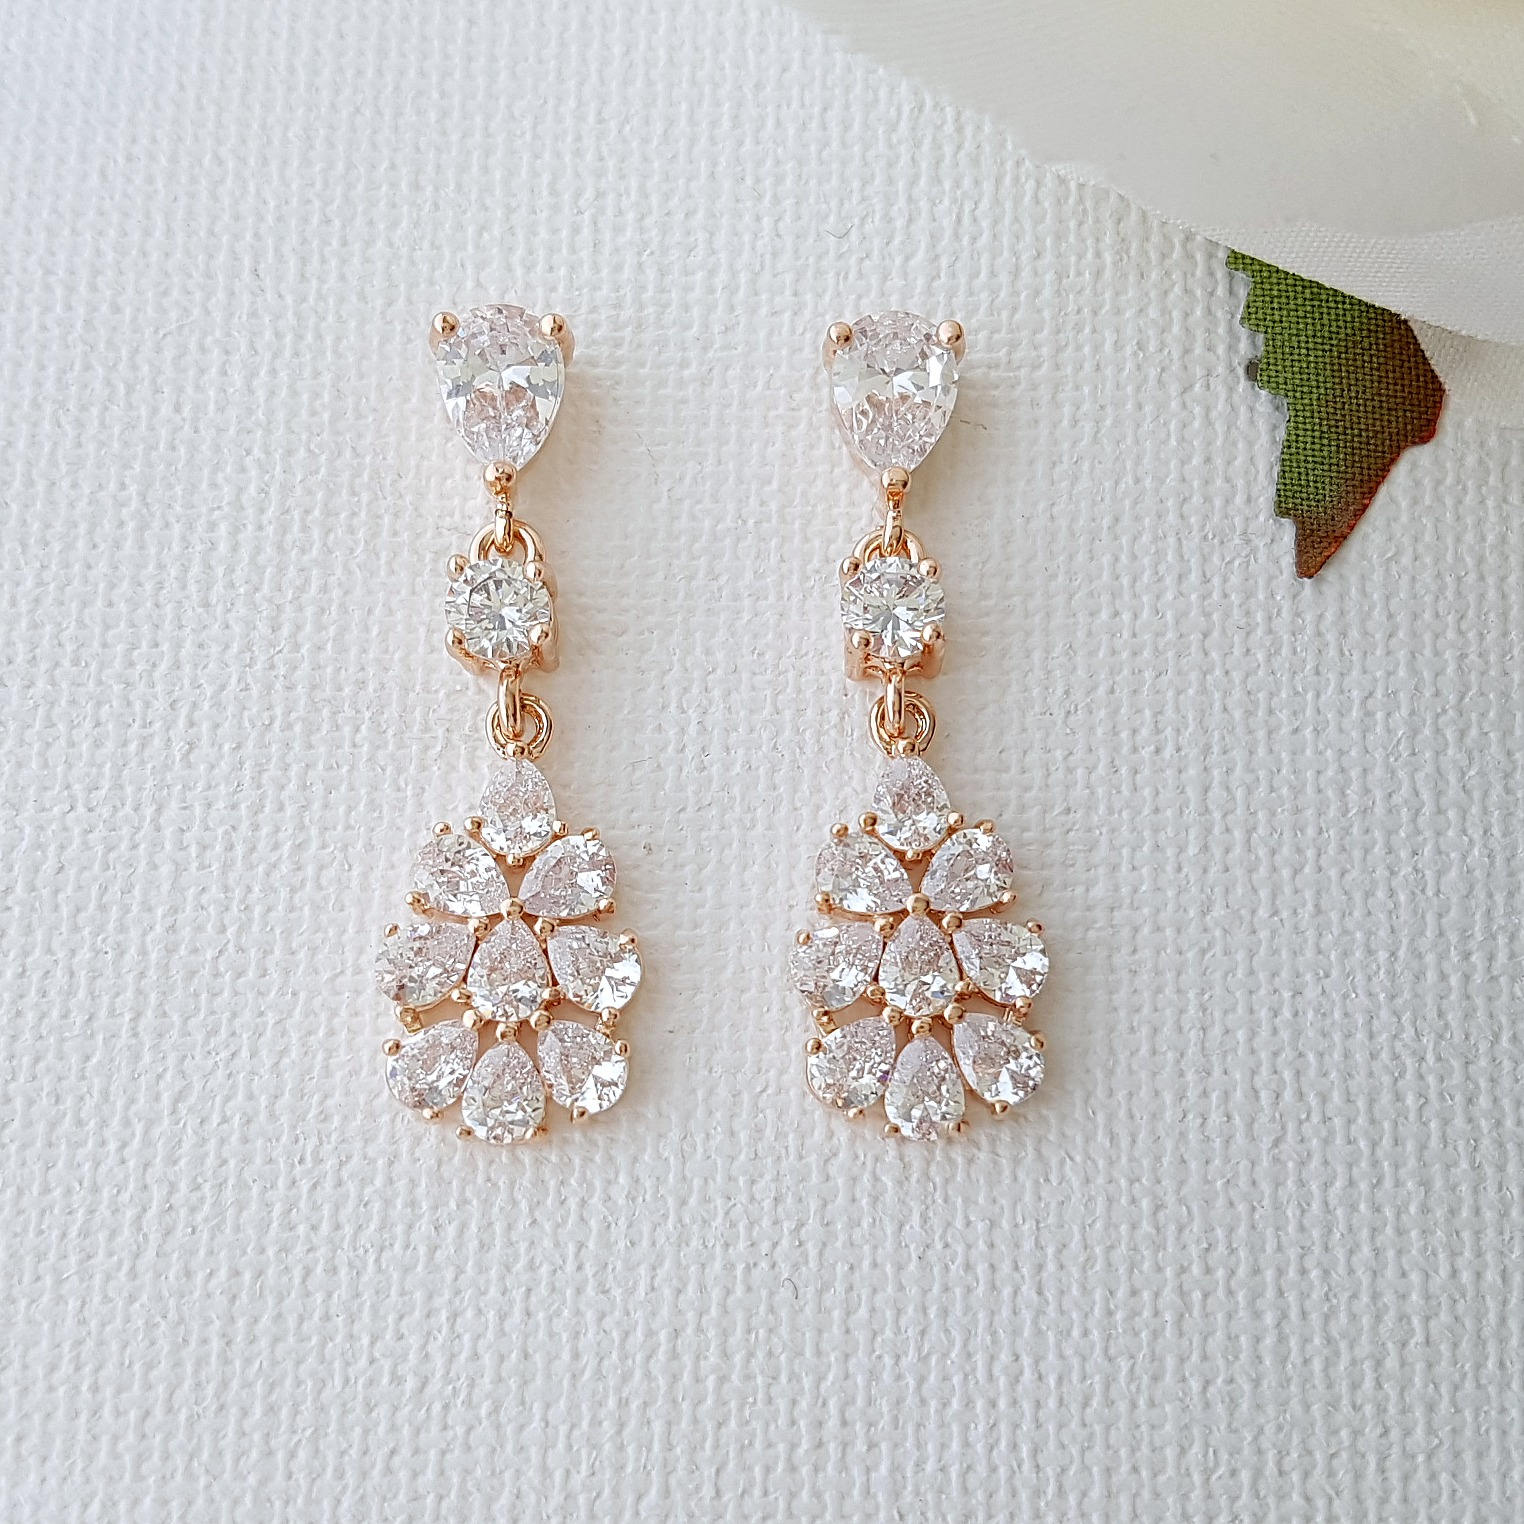 Rose Gold Bridal Earrings, Crystal Bridal Earrings, Wedding Earrings, Leaf Drop Earrings, Wedding Jewelry, Julia Earrings